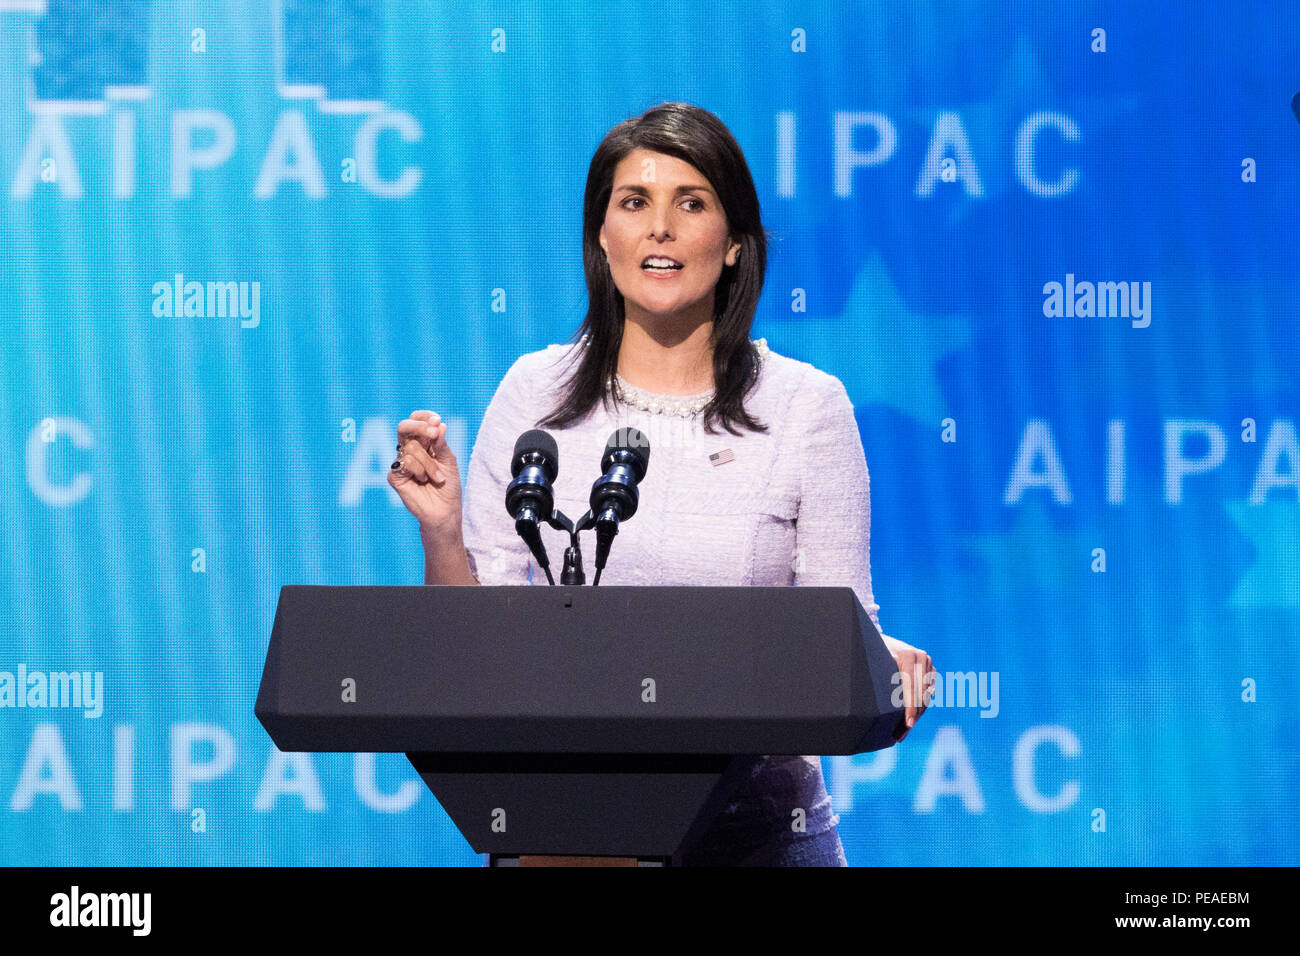 Nikki Haley, United States Ambassador to the United Nations, speaking at the AIPAC (American Israel Public Affairs Committee) Policy Conference at the - Stock Image